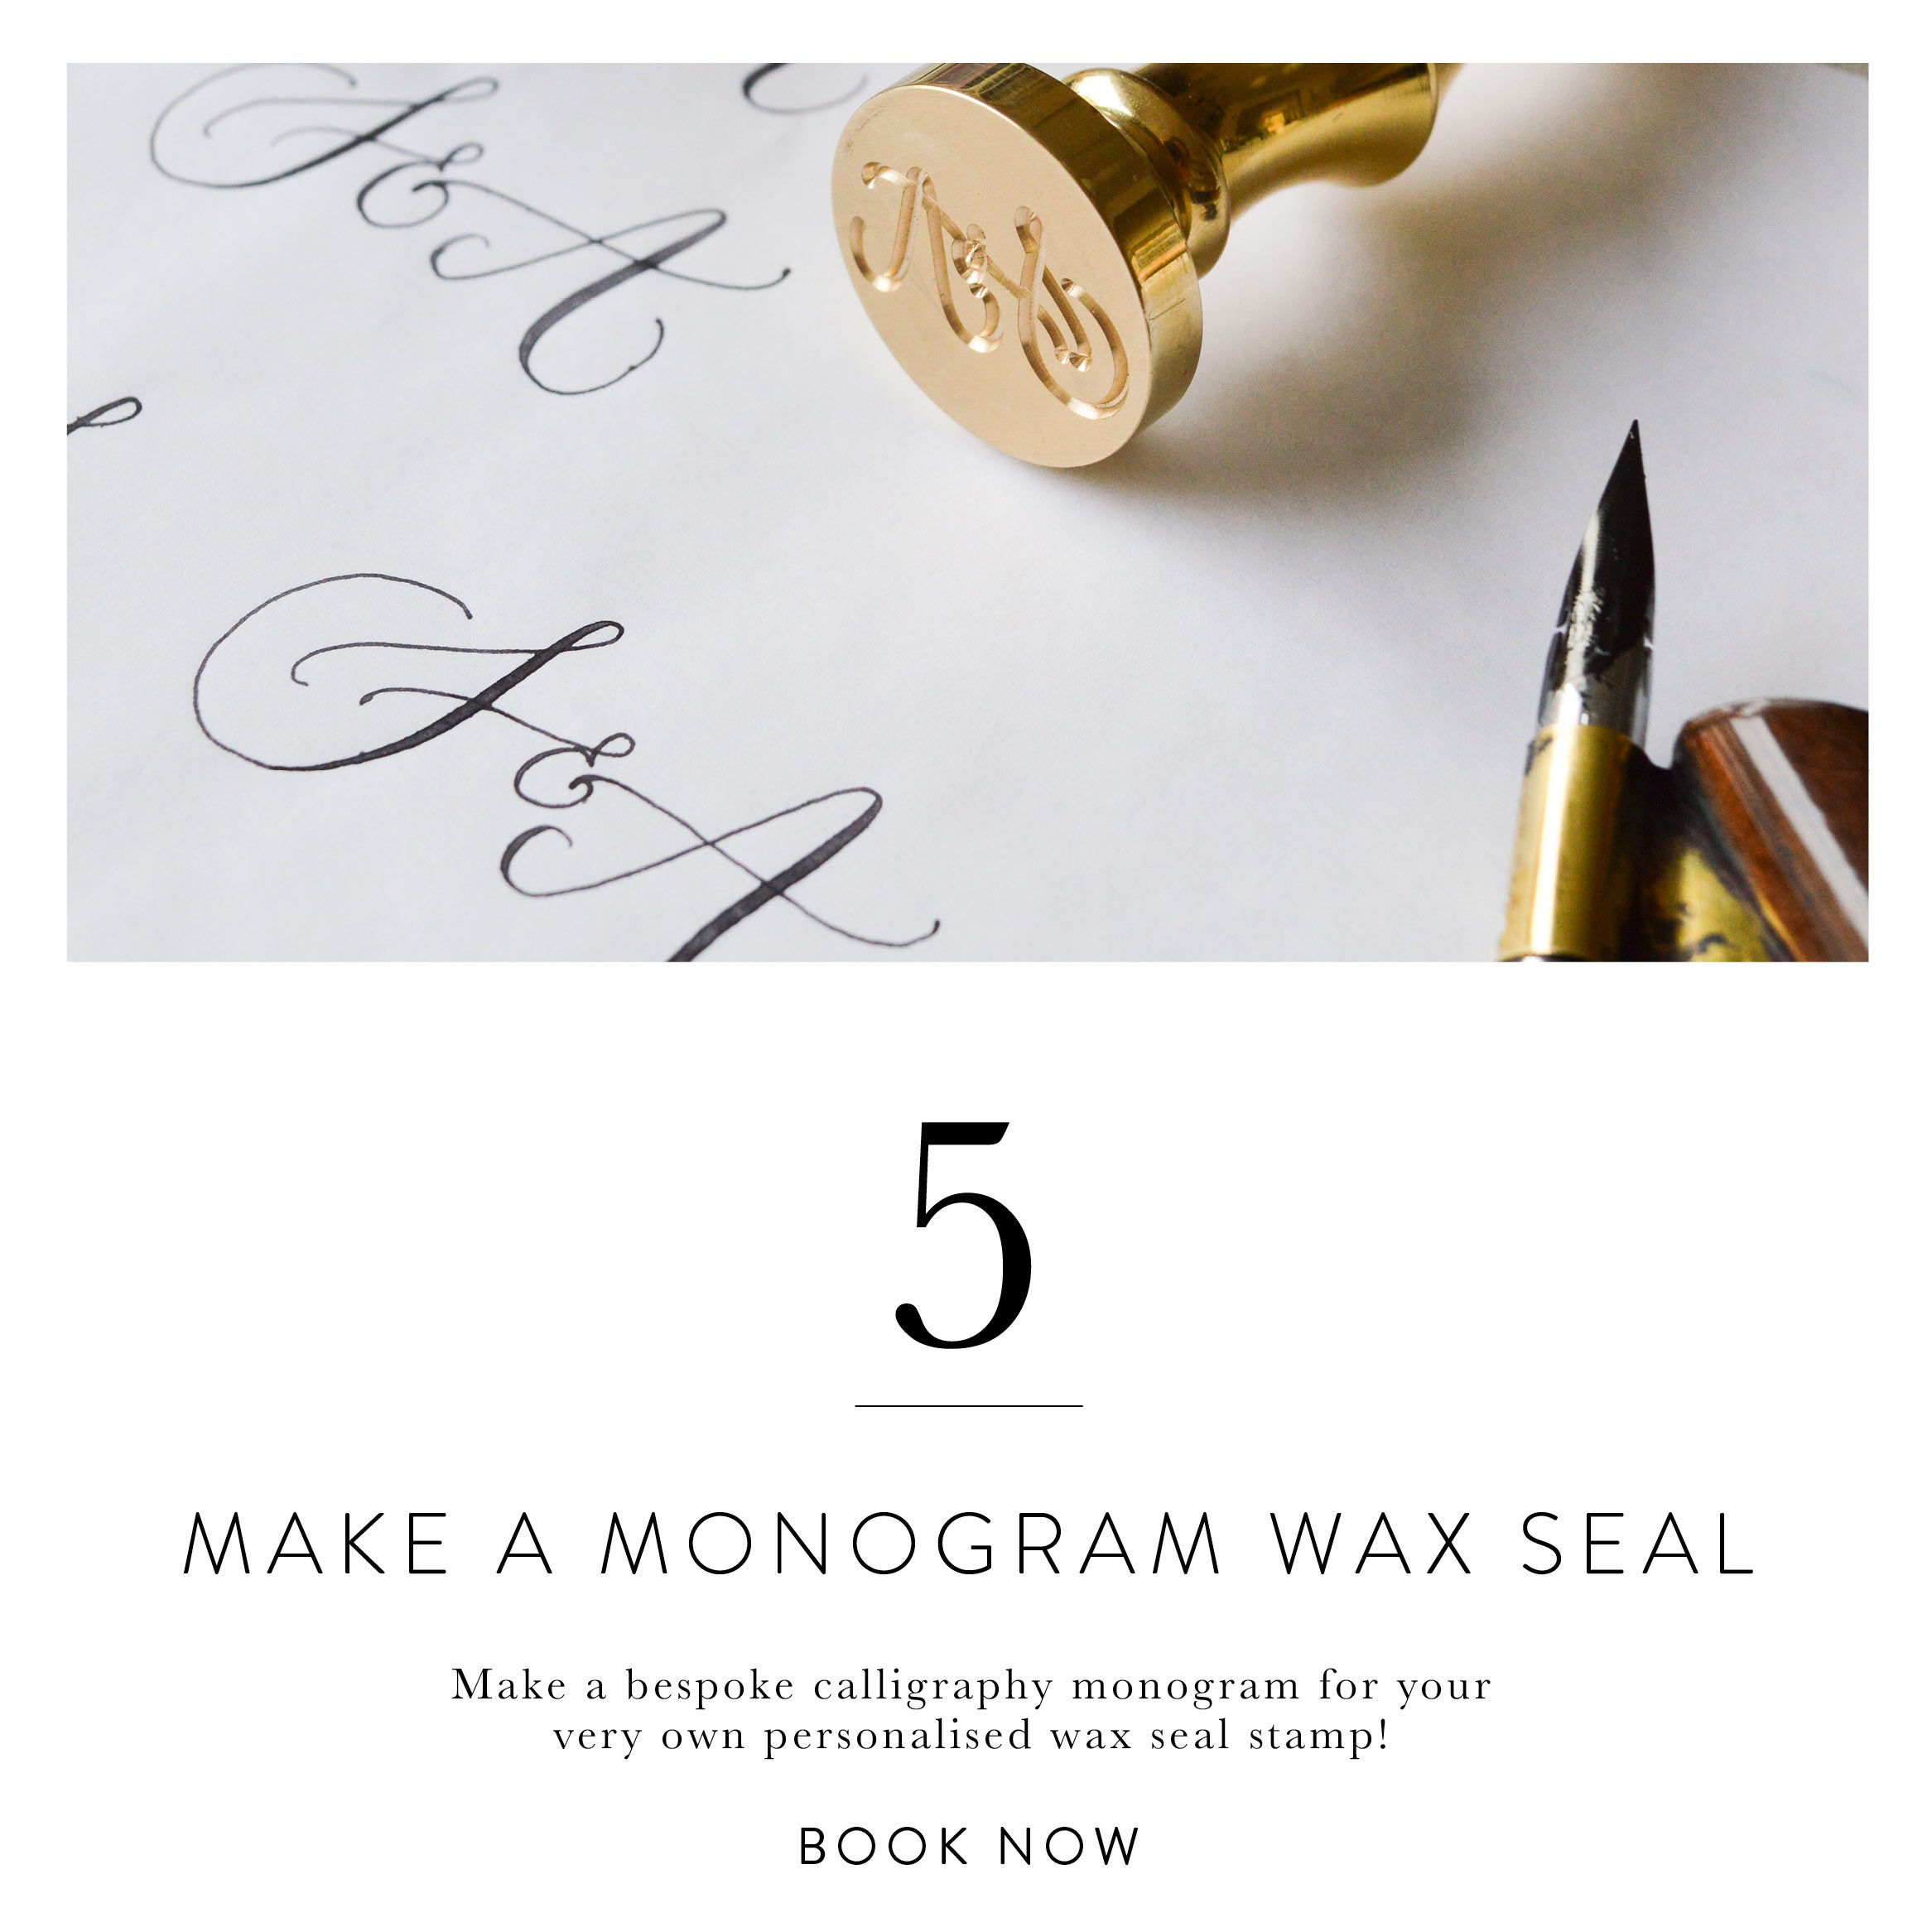 Quill London | Modern Calligraphy Festival | Top 10 Things To Do This Modern Calligraphy Festival | Make A Monogram Wax Seal at Our Special Edition Workshop